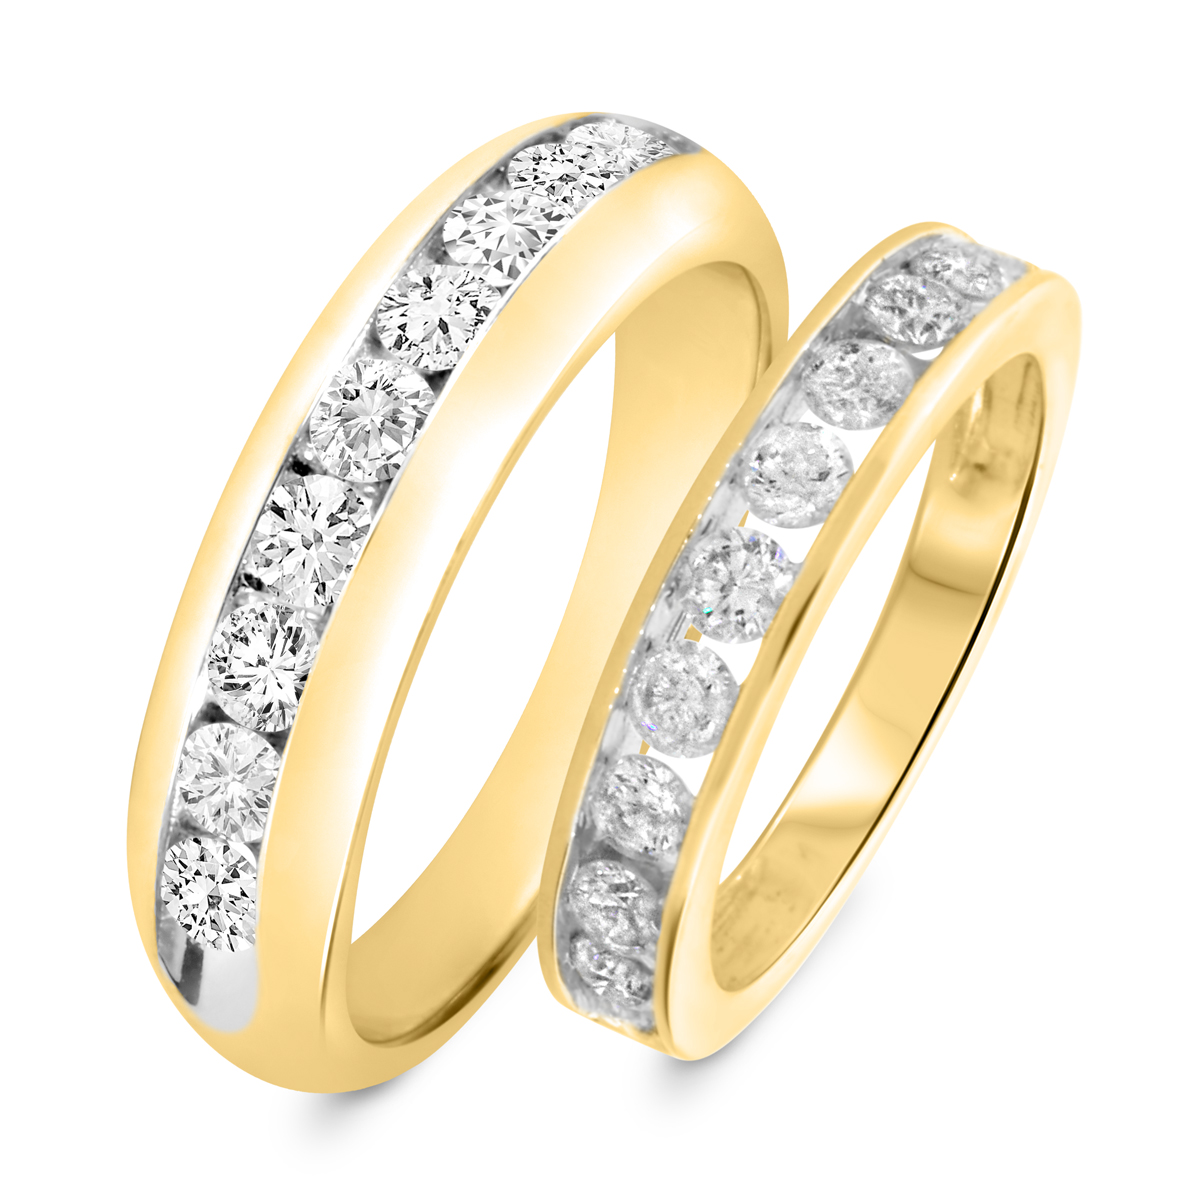 1 7/8 Carat T.W. Round Cut Diamond His and Hers Wedding Band Set 14K Yellow Gold